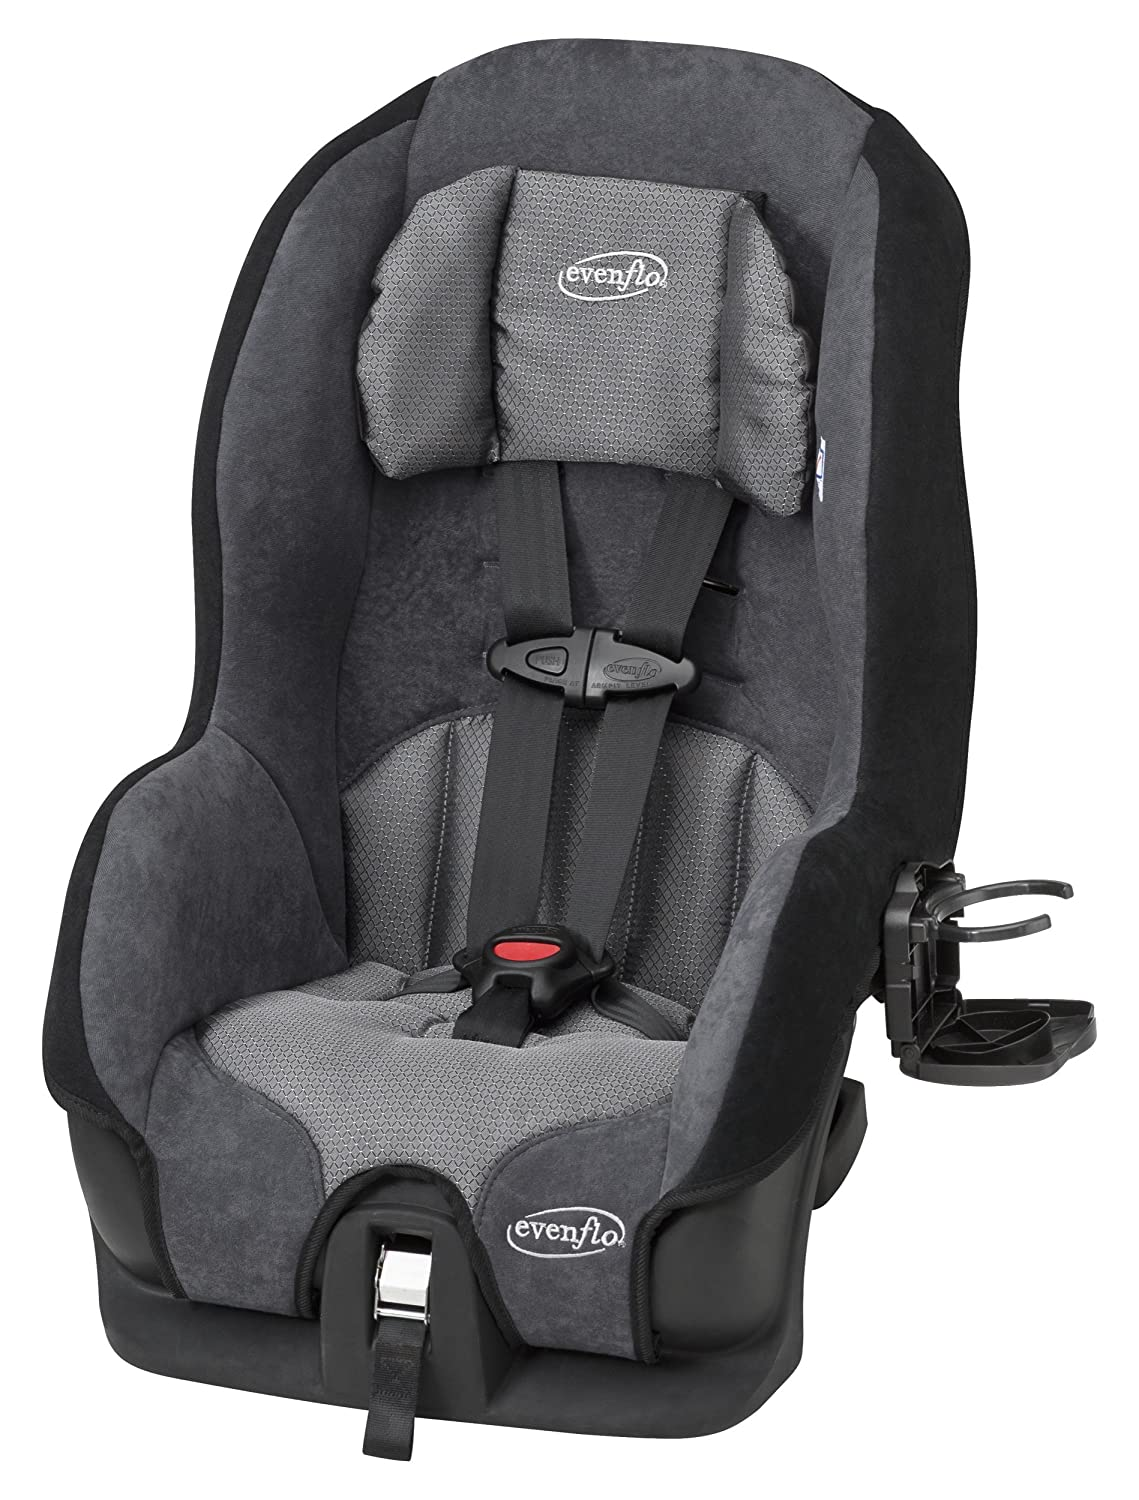 Amazon Evenflo Tribute LX Convertible Car Seat Saturn Child Safety Seats Baby